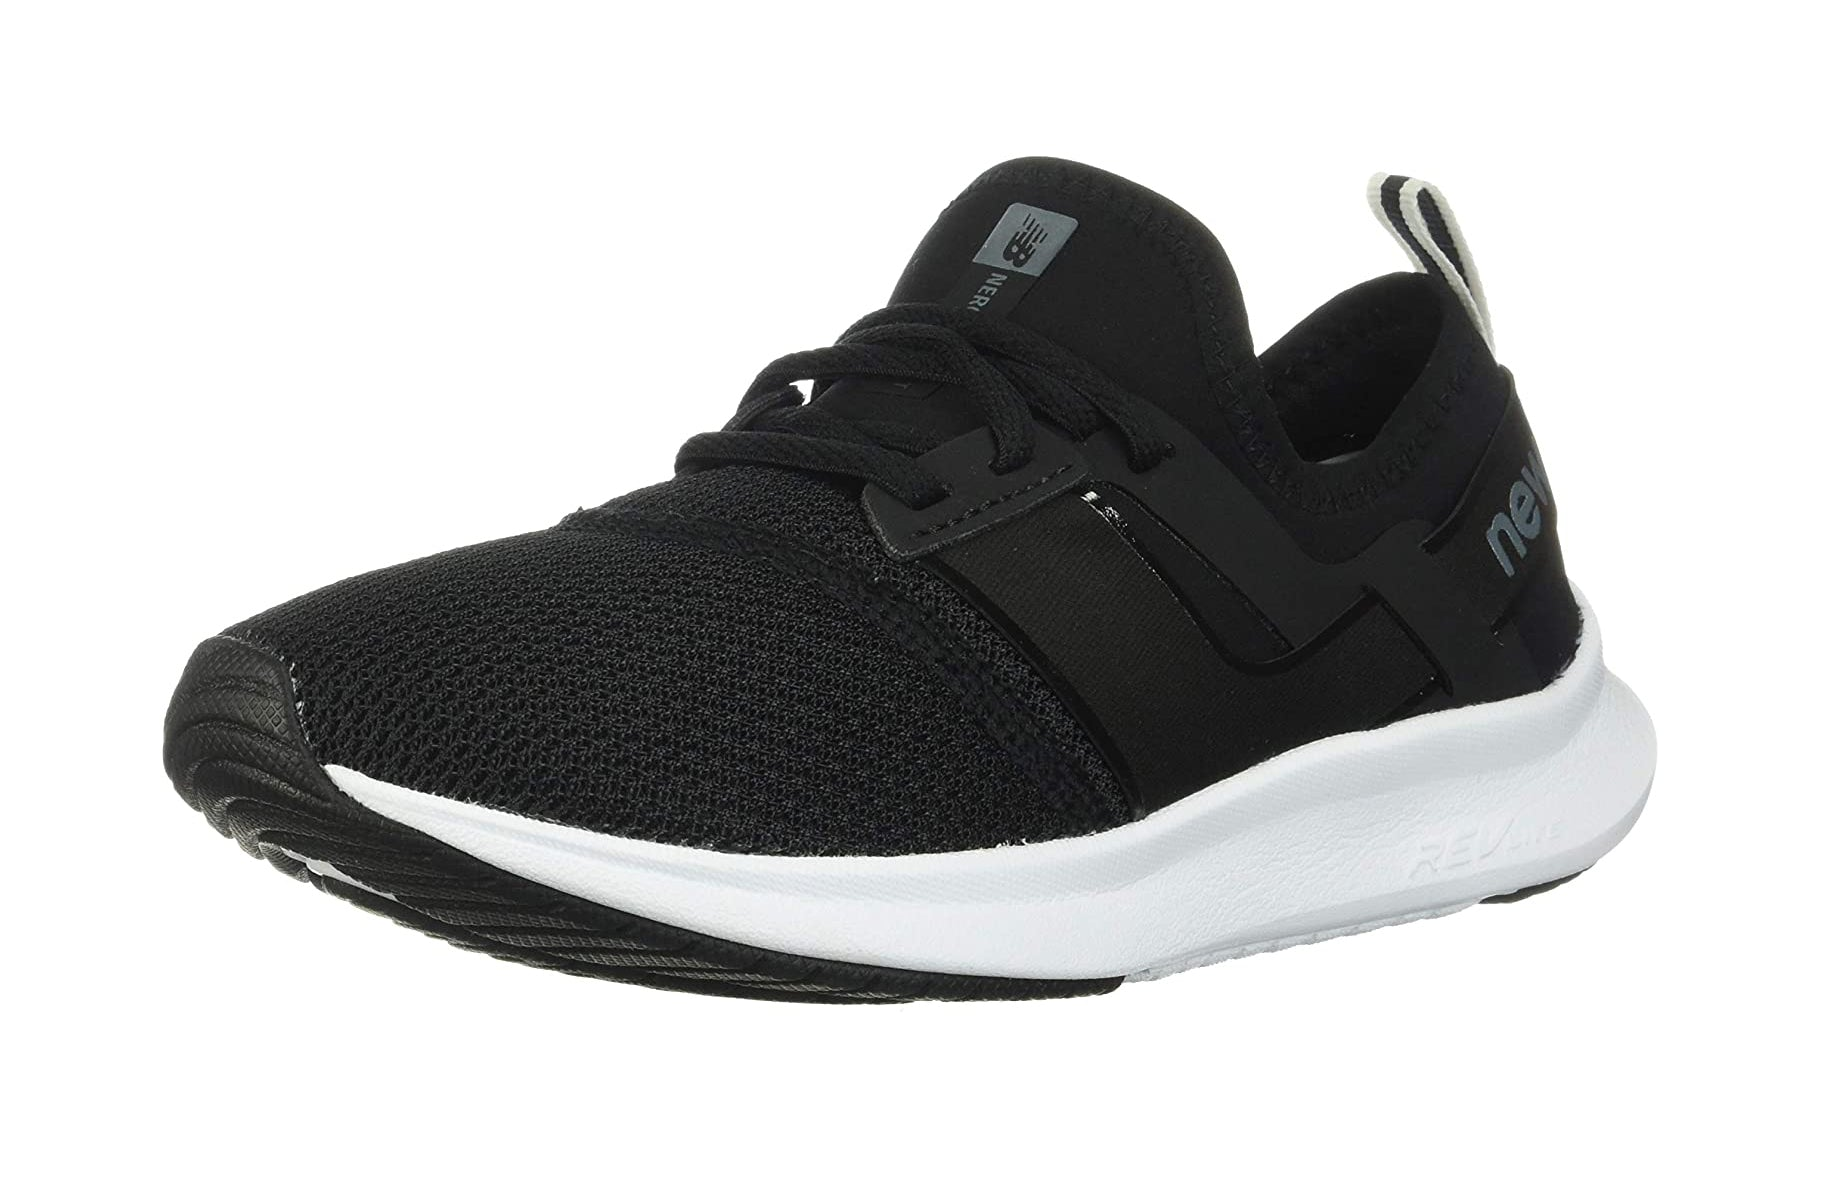 New Balance NB Nergize Sport Black/White Women's Shoes